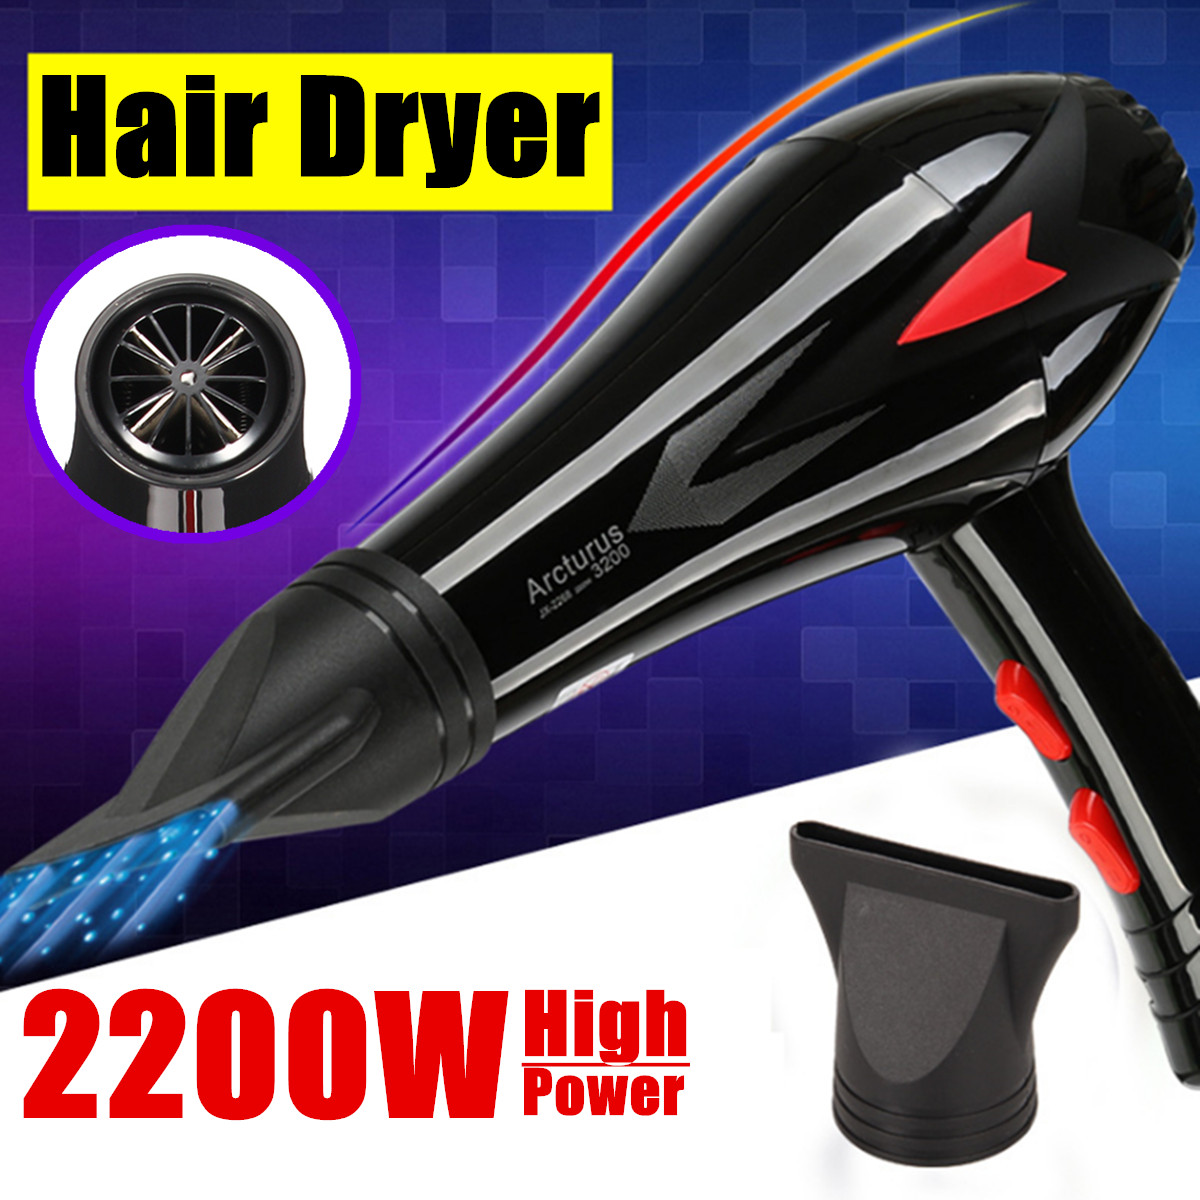 Professional Style Hair Settings Concentrator Nozzle Dryer 2200W 3 Heat 2 Speed Constant Temperature AU Plug Quick Accessories povos ph9022i 3 mode electric 2200w hair dryer white golden 2 flat pin plug